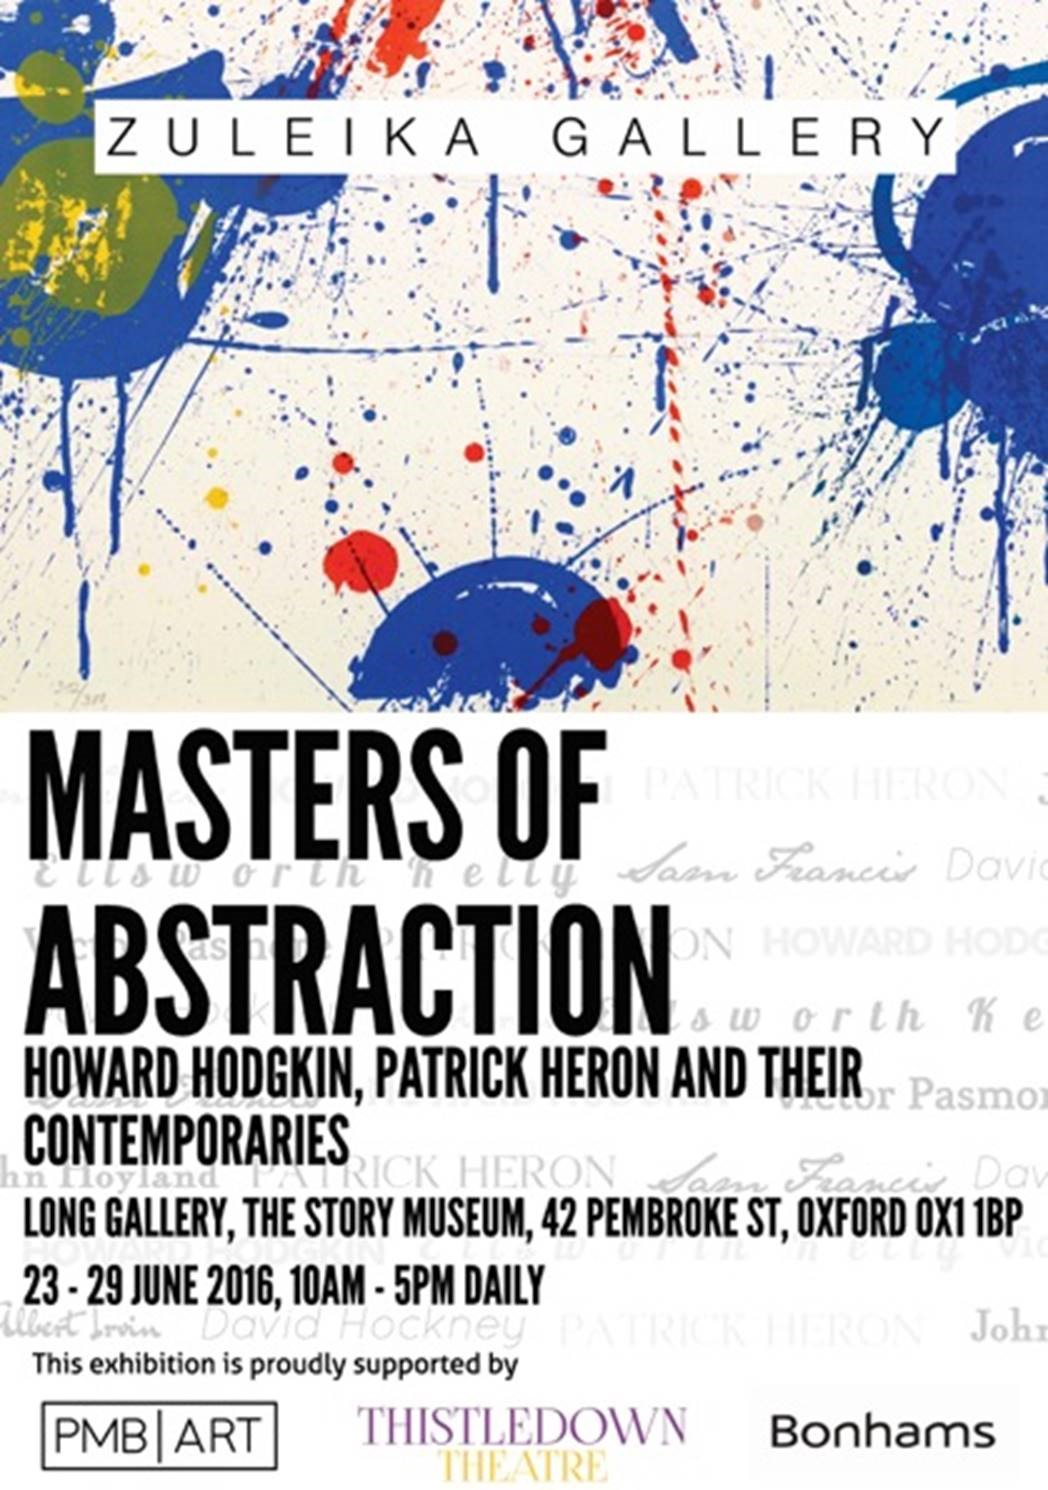 Maters of Abstraction exhibition flyer